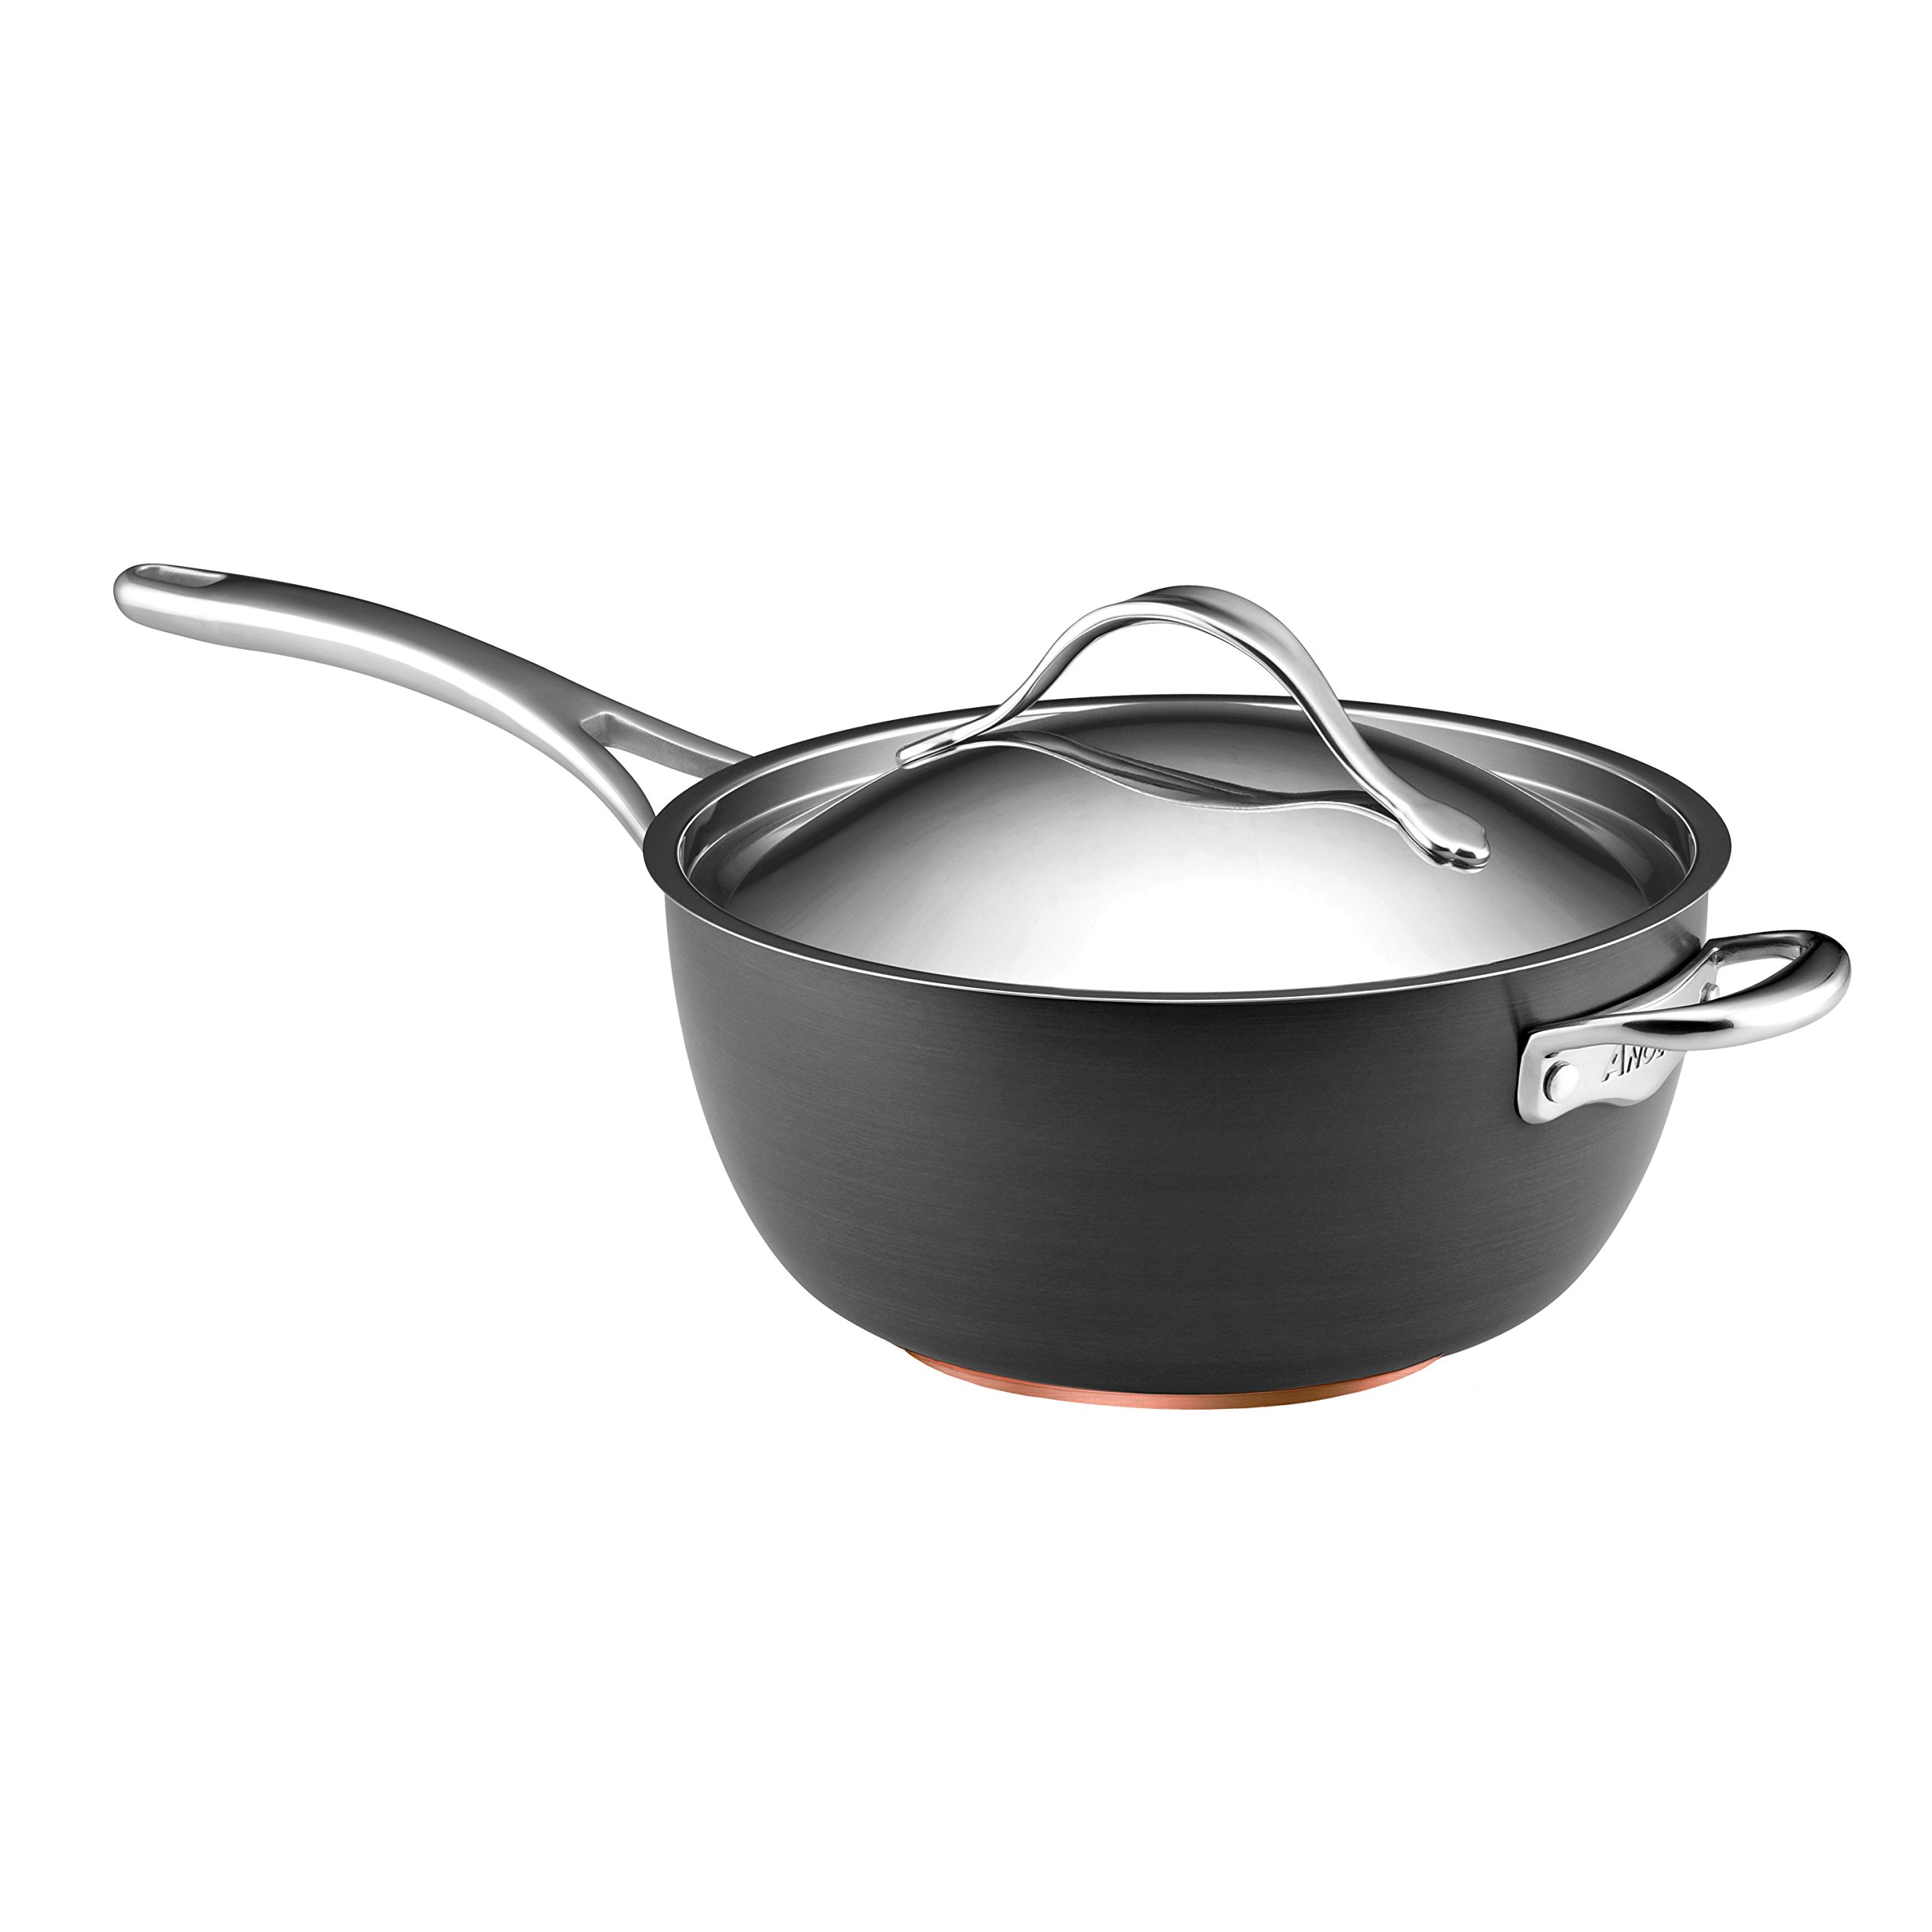 Anolon Nouvelle Copper Hard Anodized Nonstick 5.5-Qt. Covered Saucier with Helper Handle